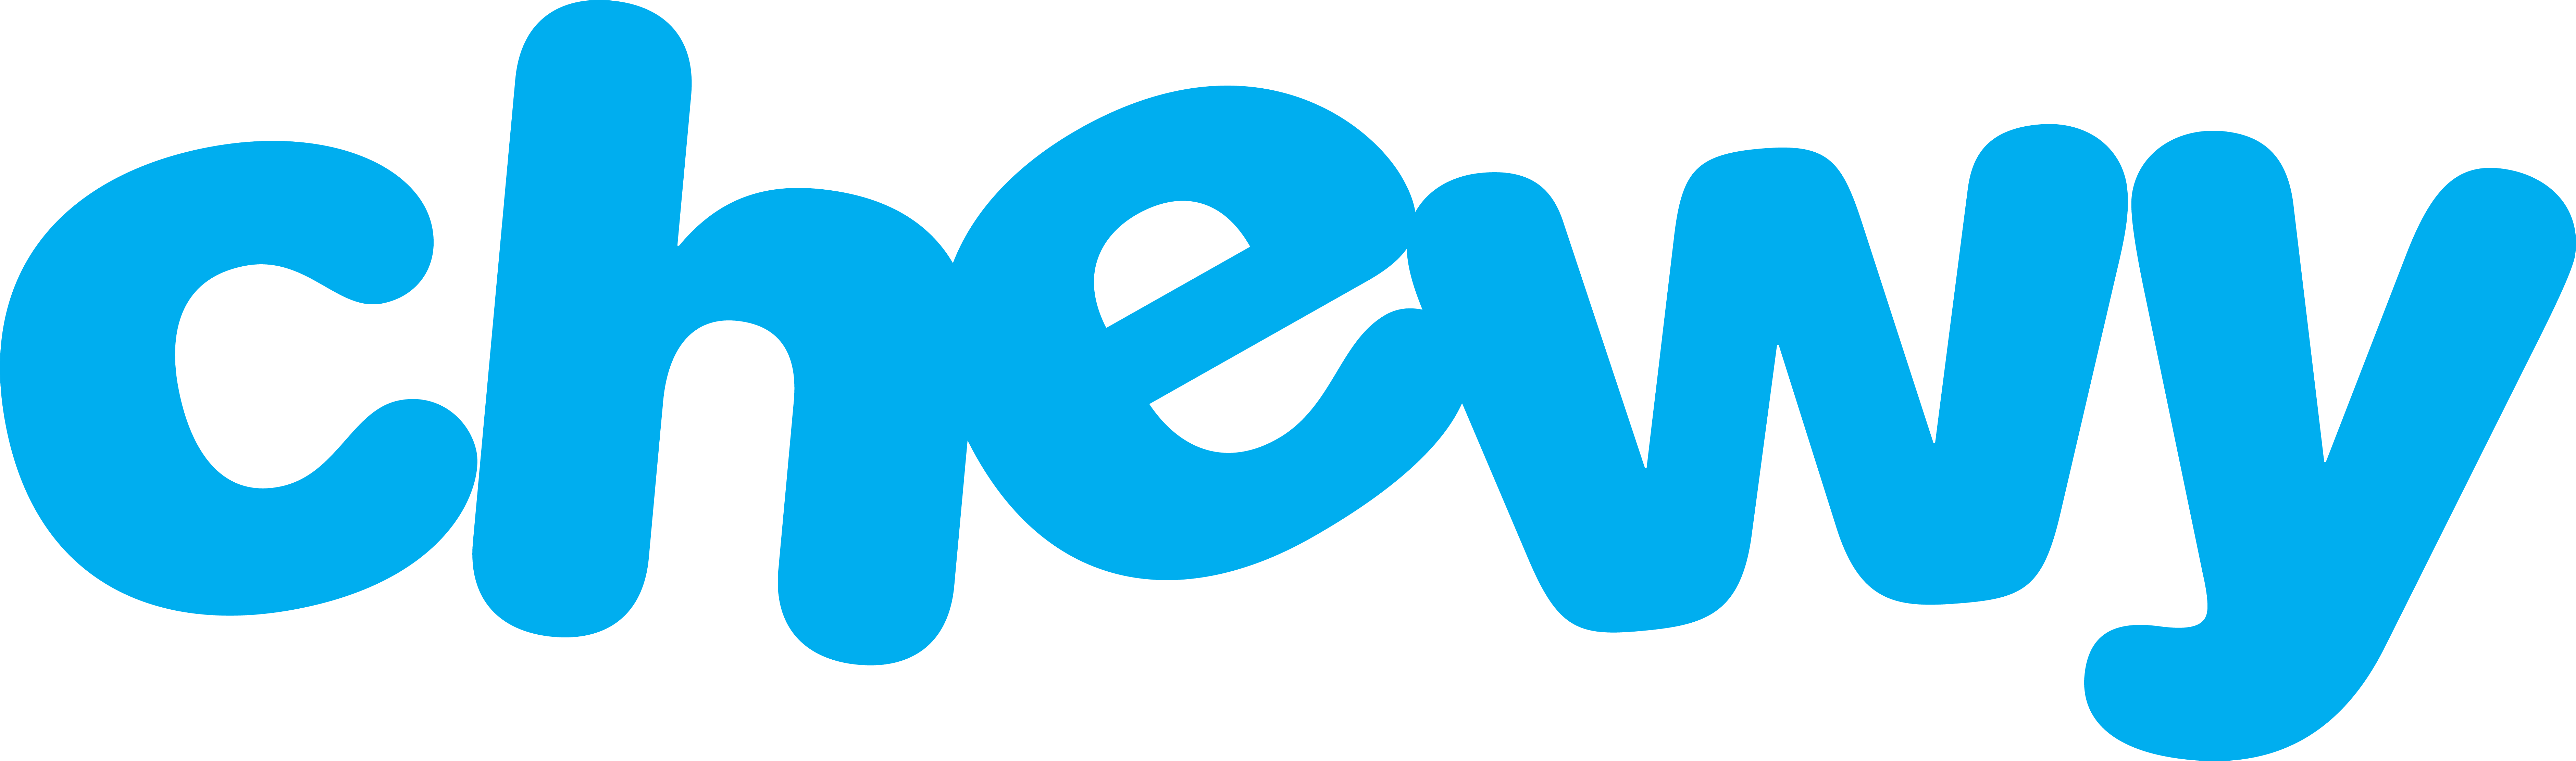 Chewy Logos.